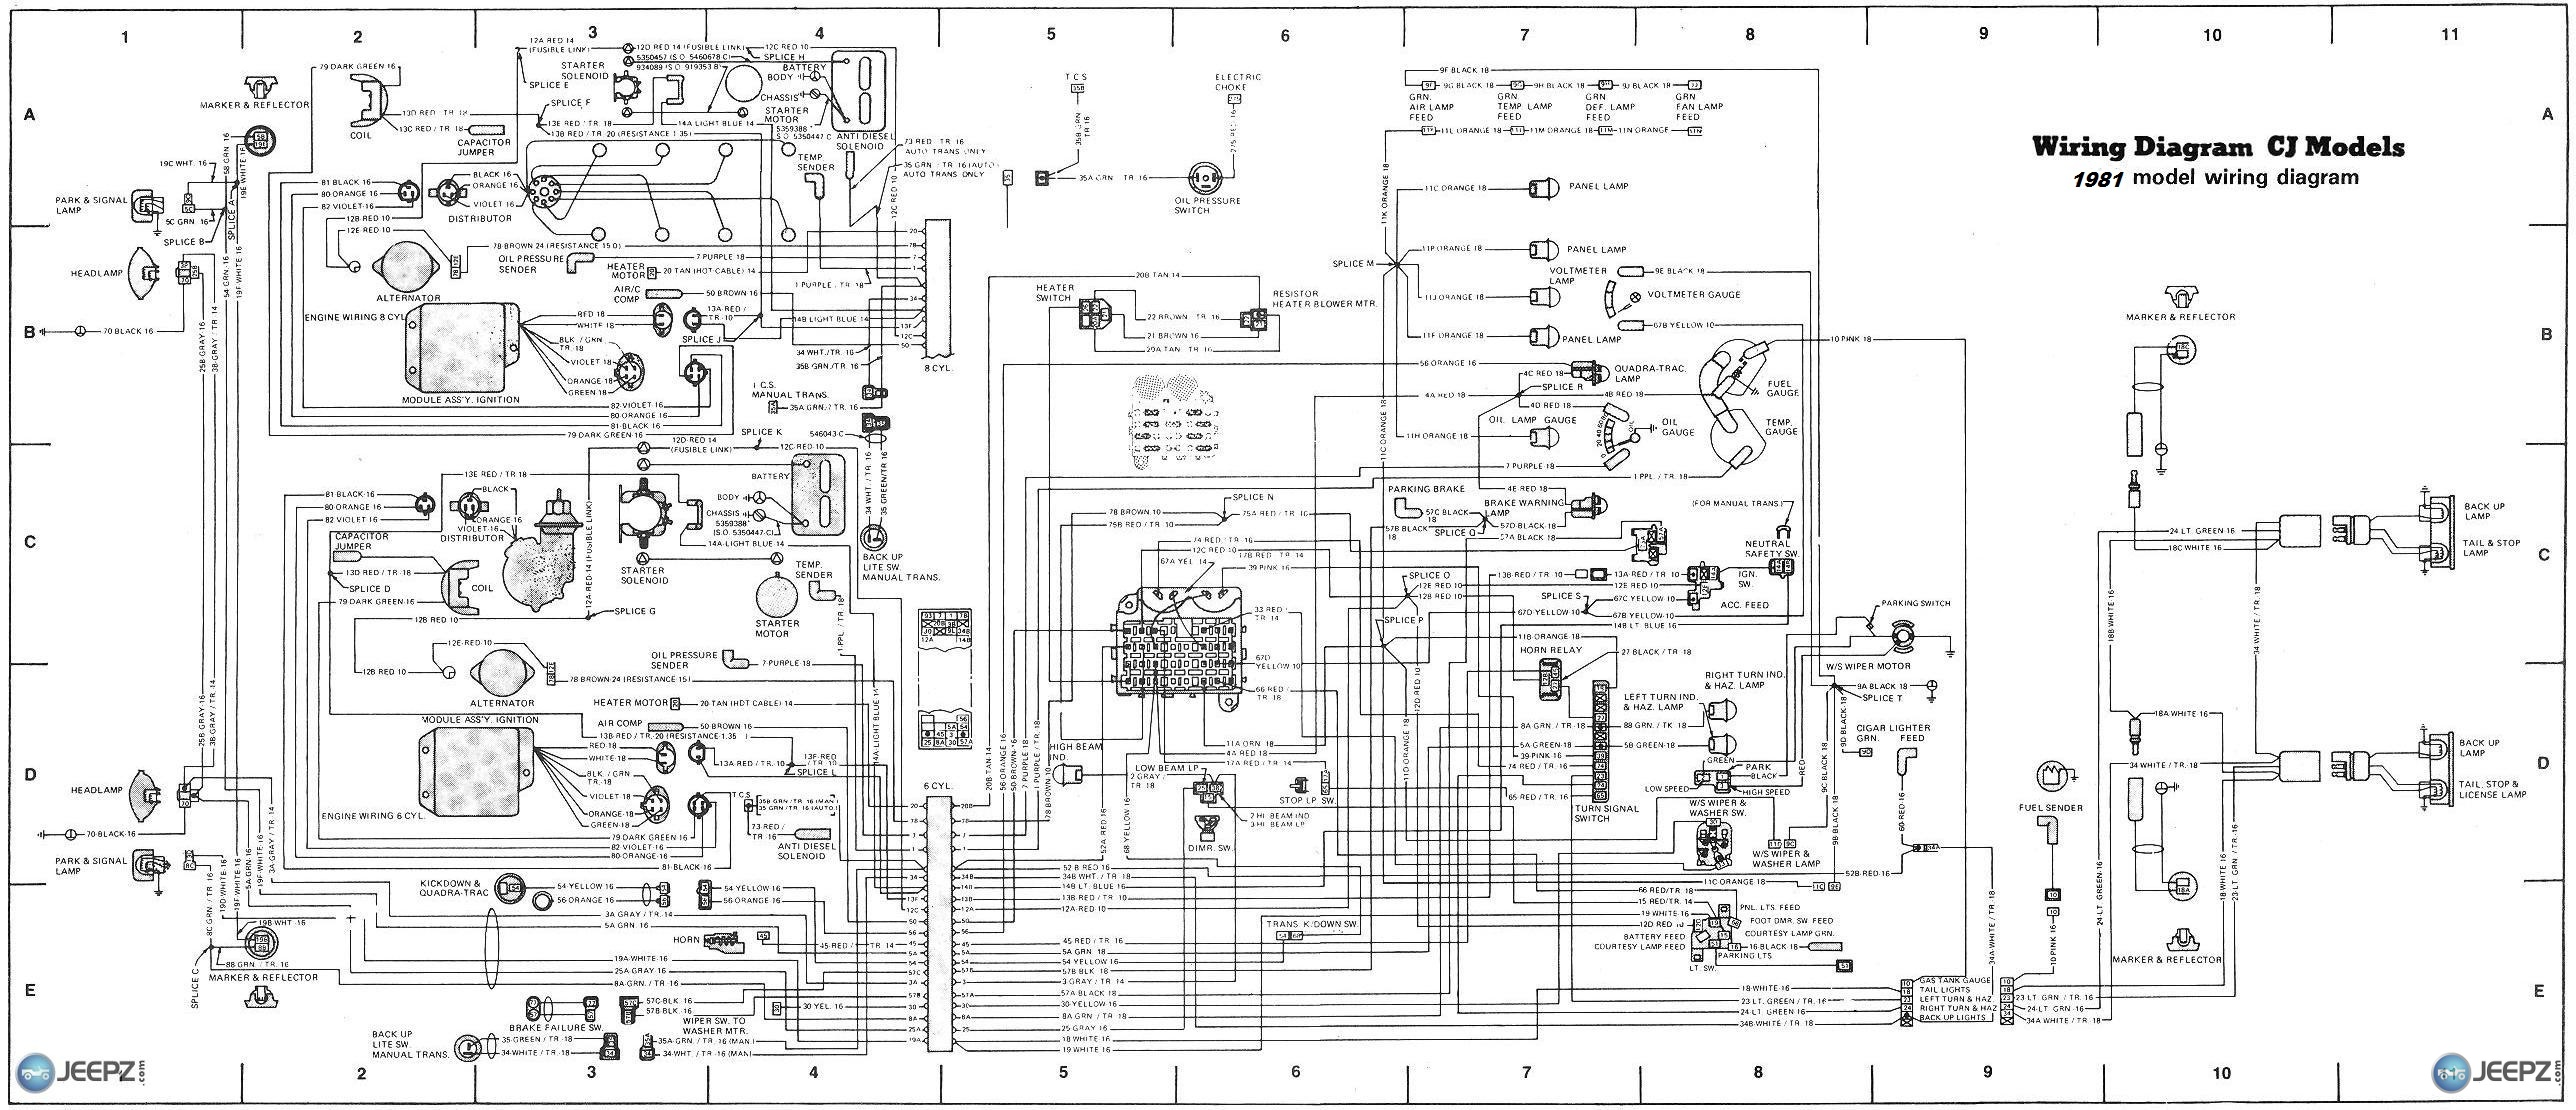 7993d1301845049 cj 7 wire diagram cj wiring diagram 1981 cj 7 wire diagram 7 wire diagram at mifinder.co